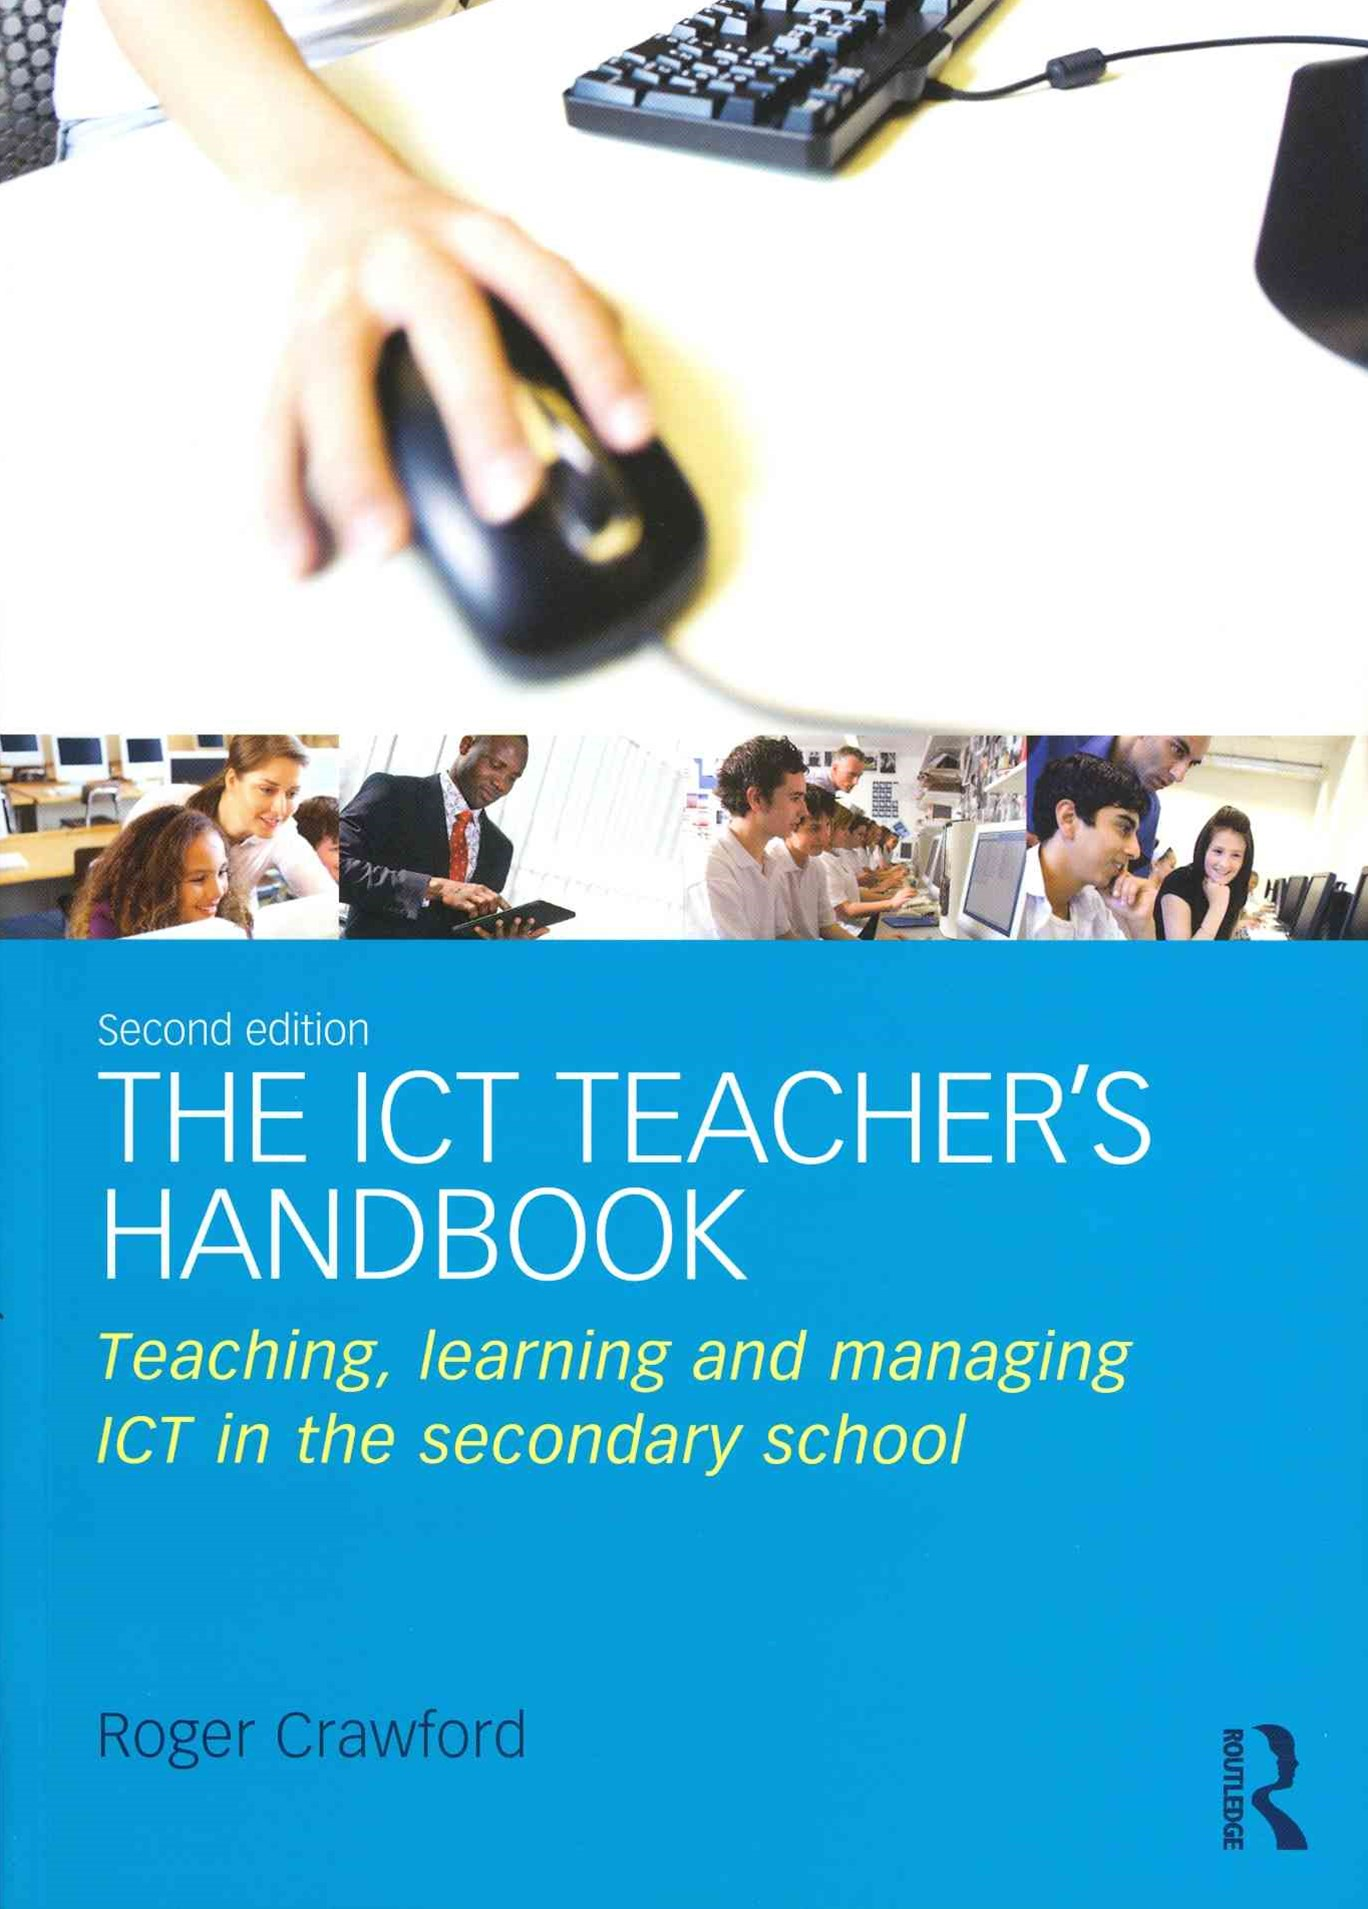 ICT Teacher's Handbook